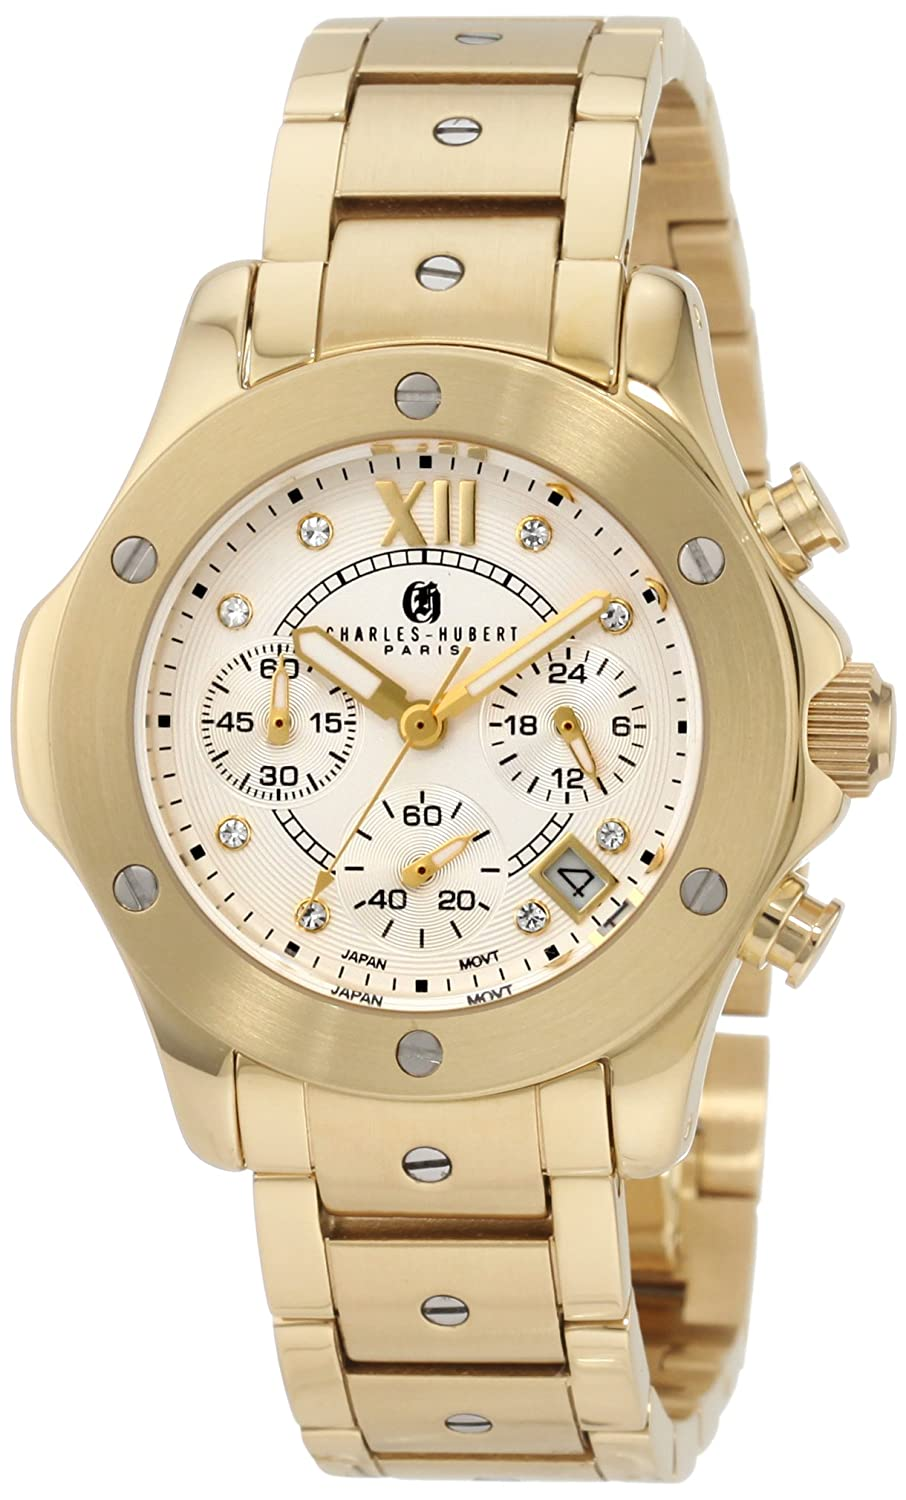 Damen Charles - Hubert Silver Dial Chronograph Armbanduhr GLD-PLATED